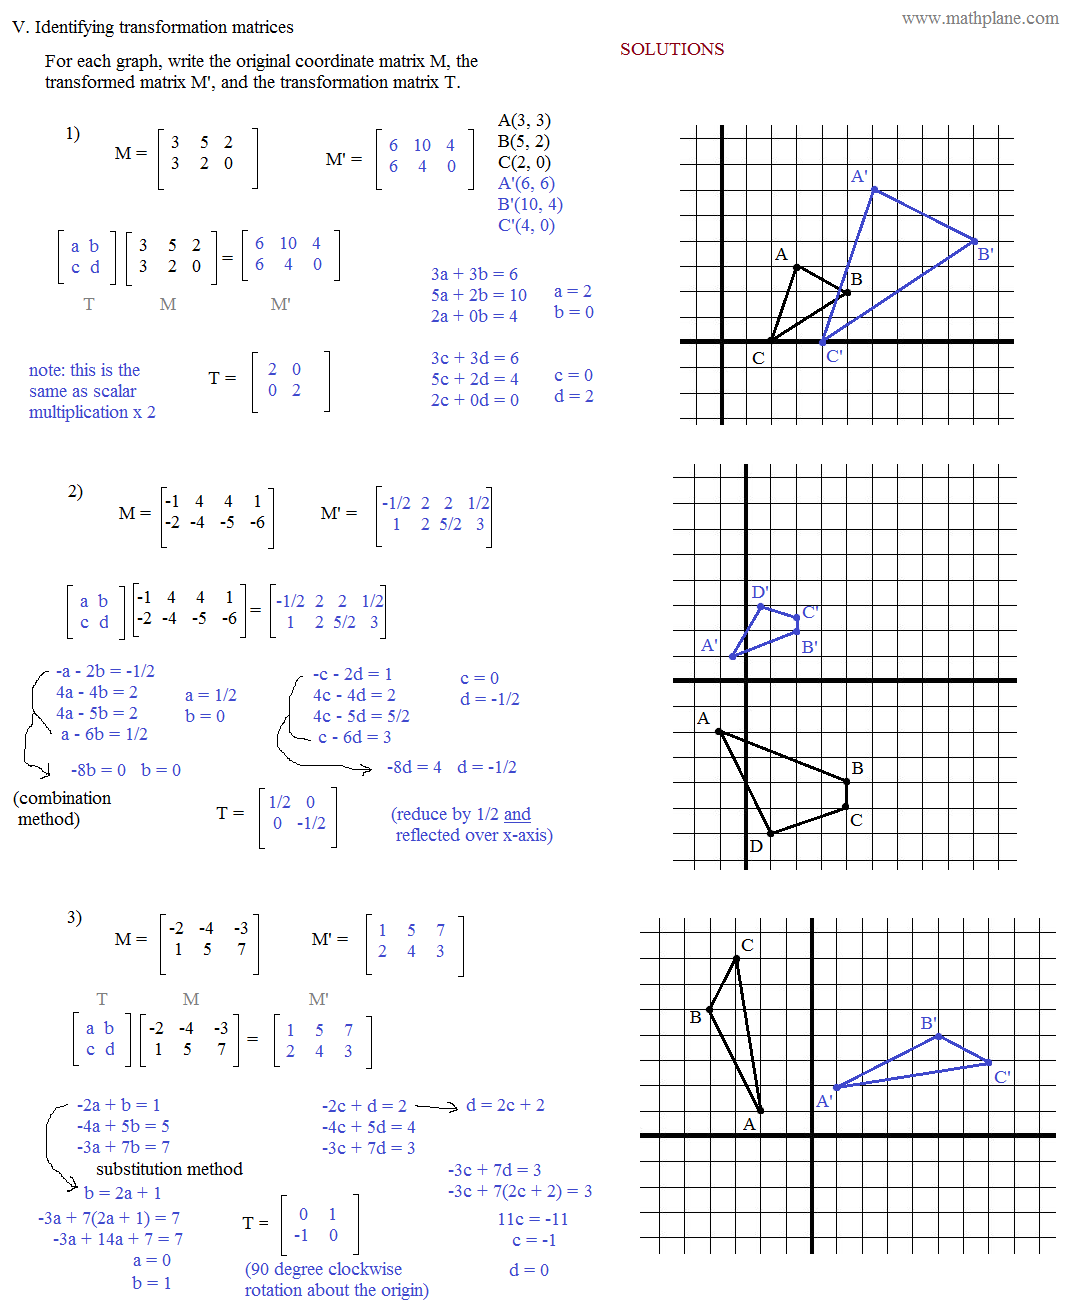 Printables Geometry Transformation Worksheets math plane matrix iii coordinate geometry worksheet 3 solutions